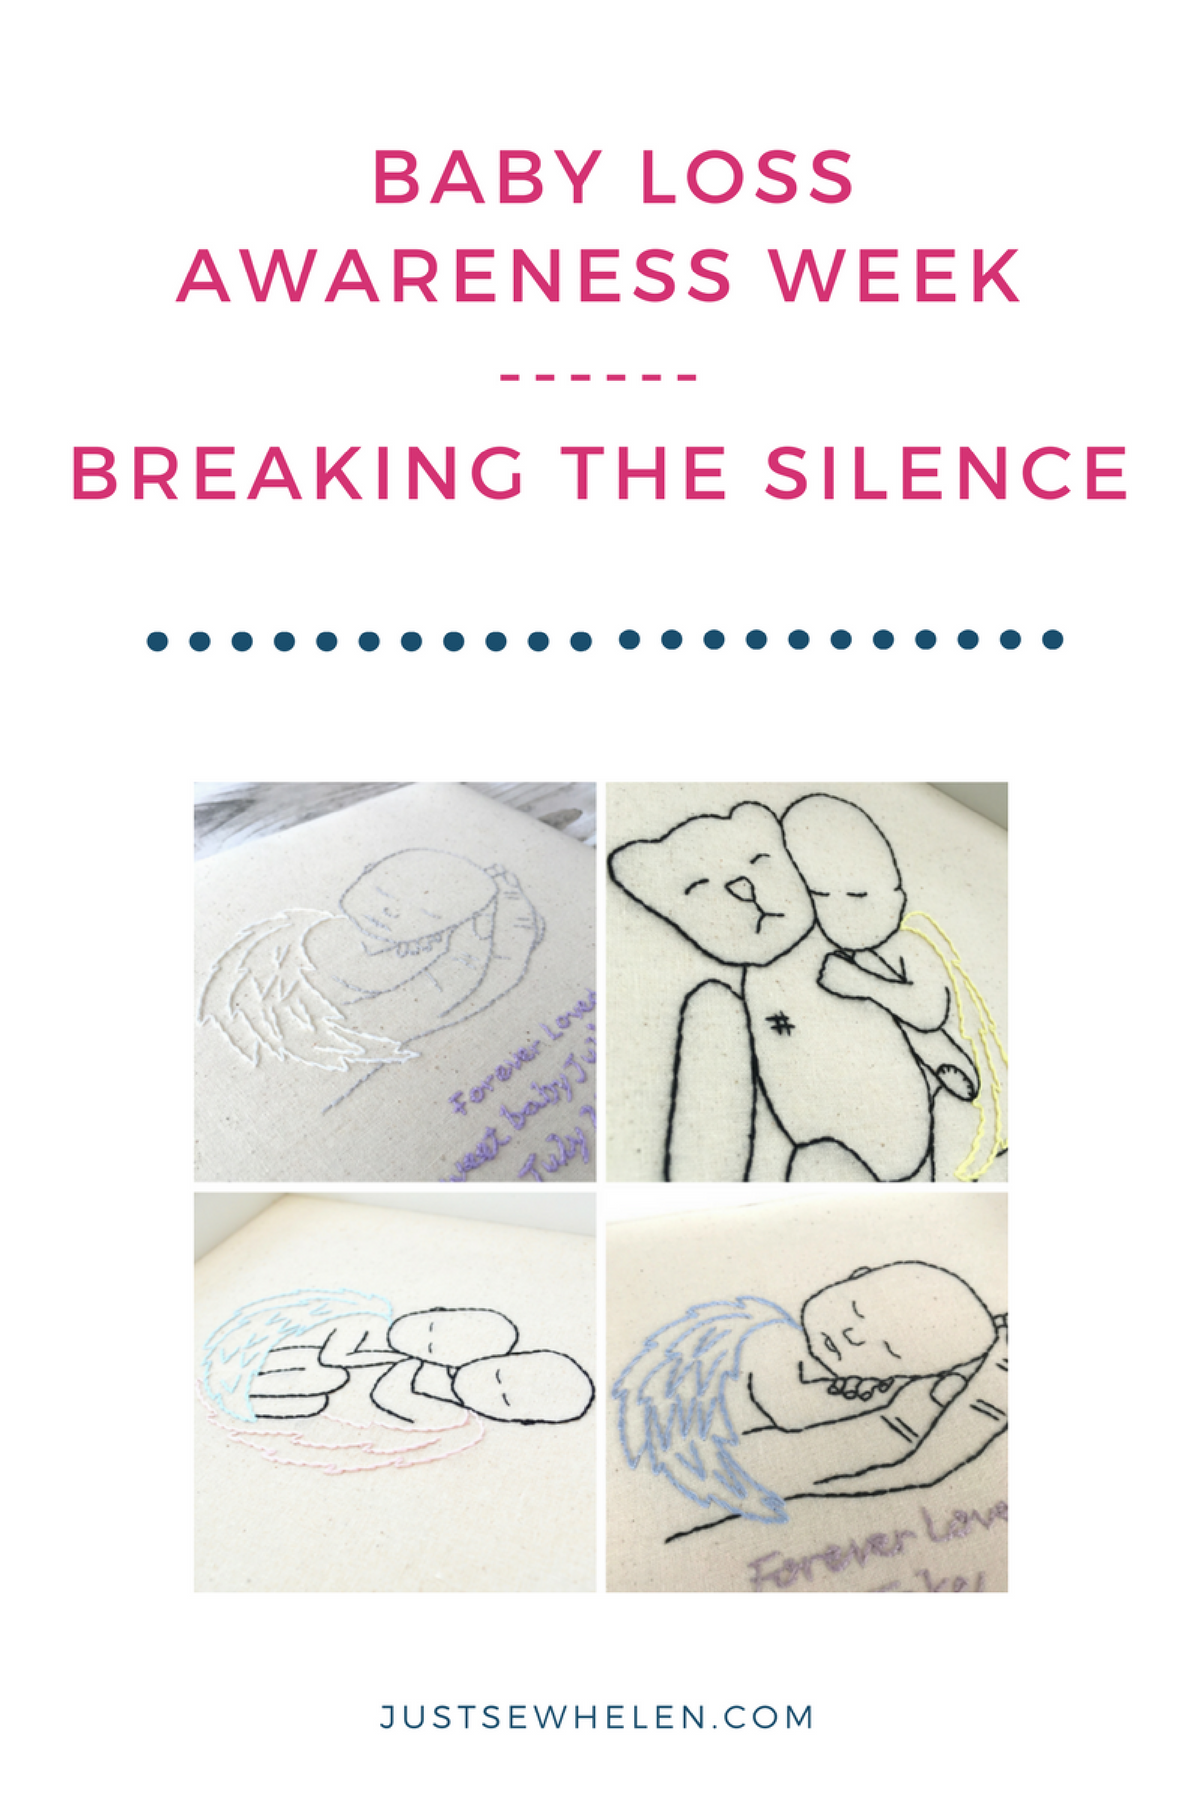 Breaking the silence - Baby Loss Awareness Week